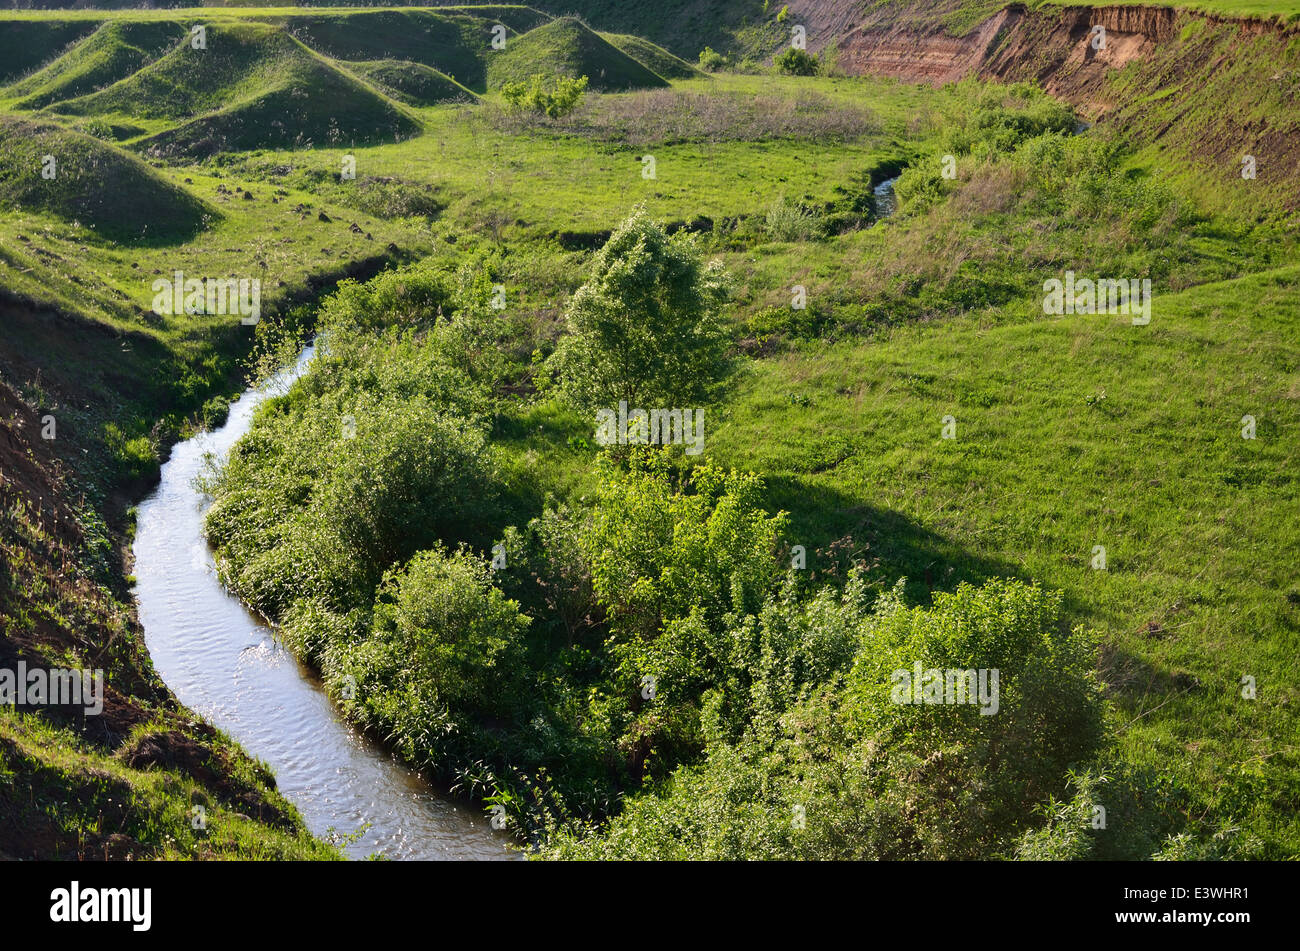 Canyon of the twisting river - Stock Image